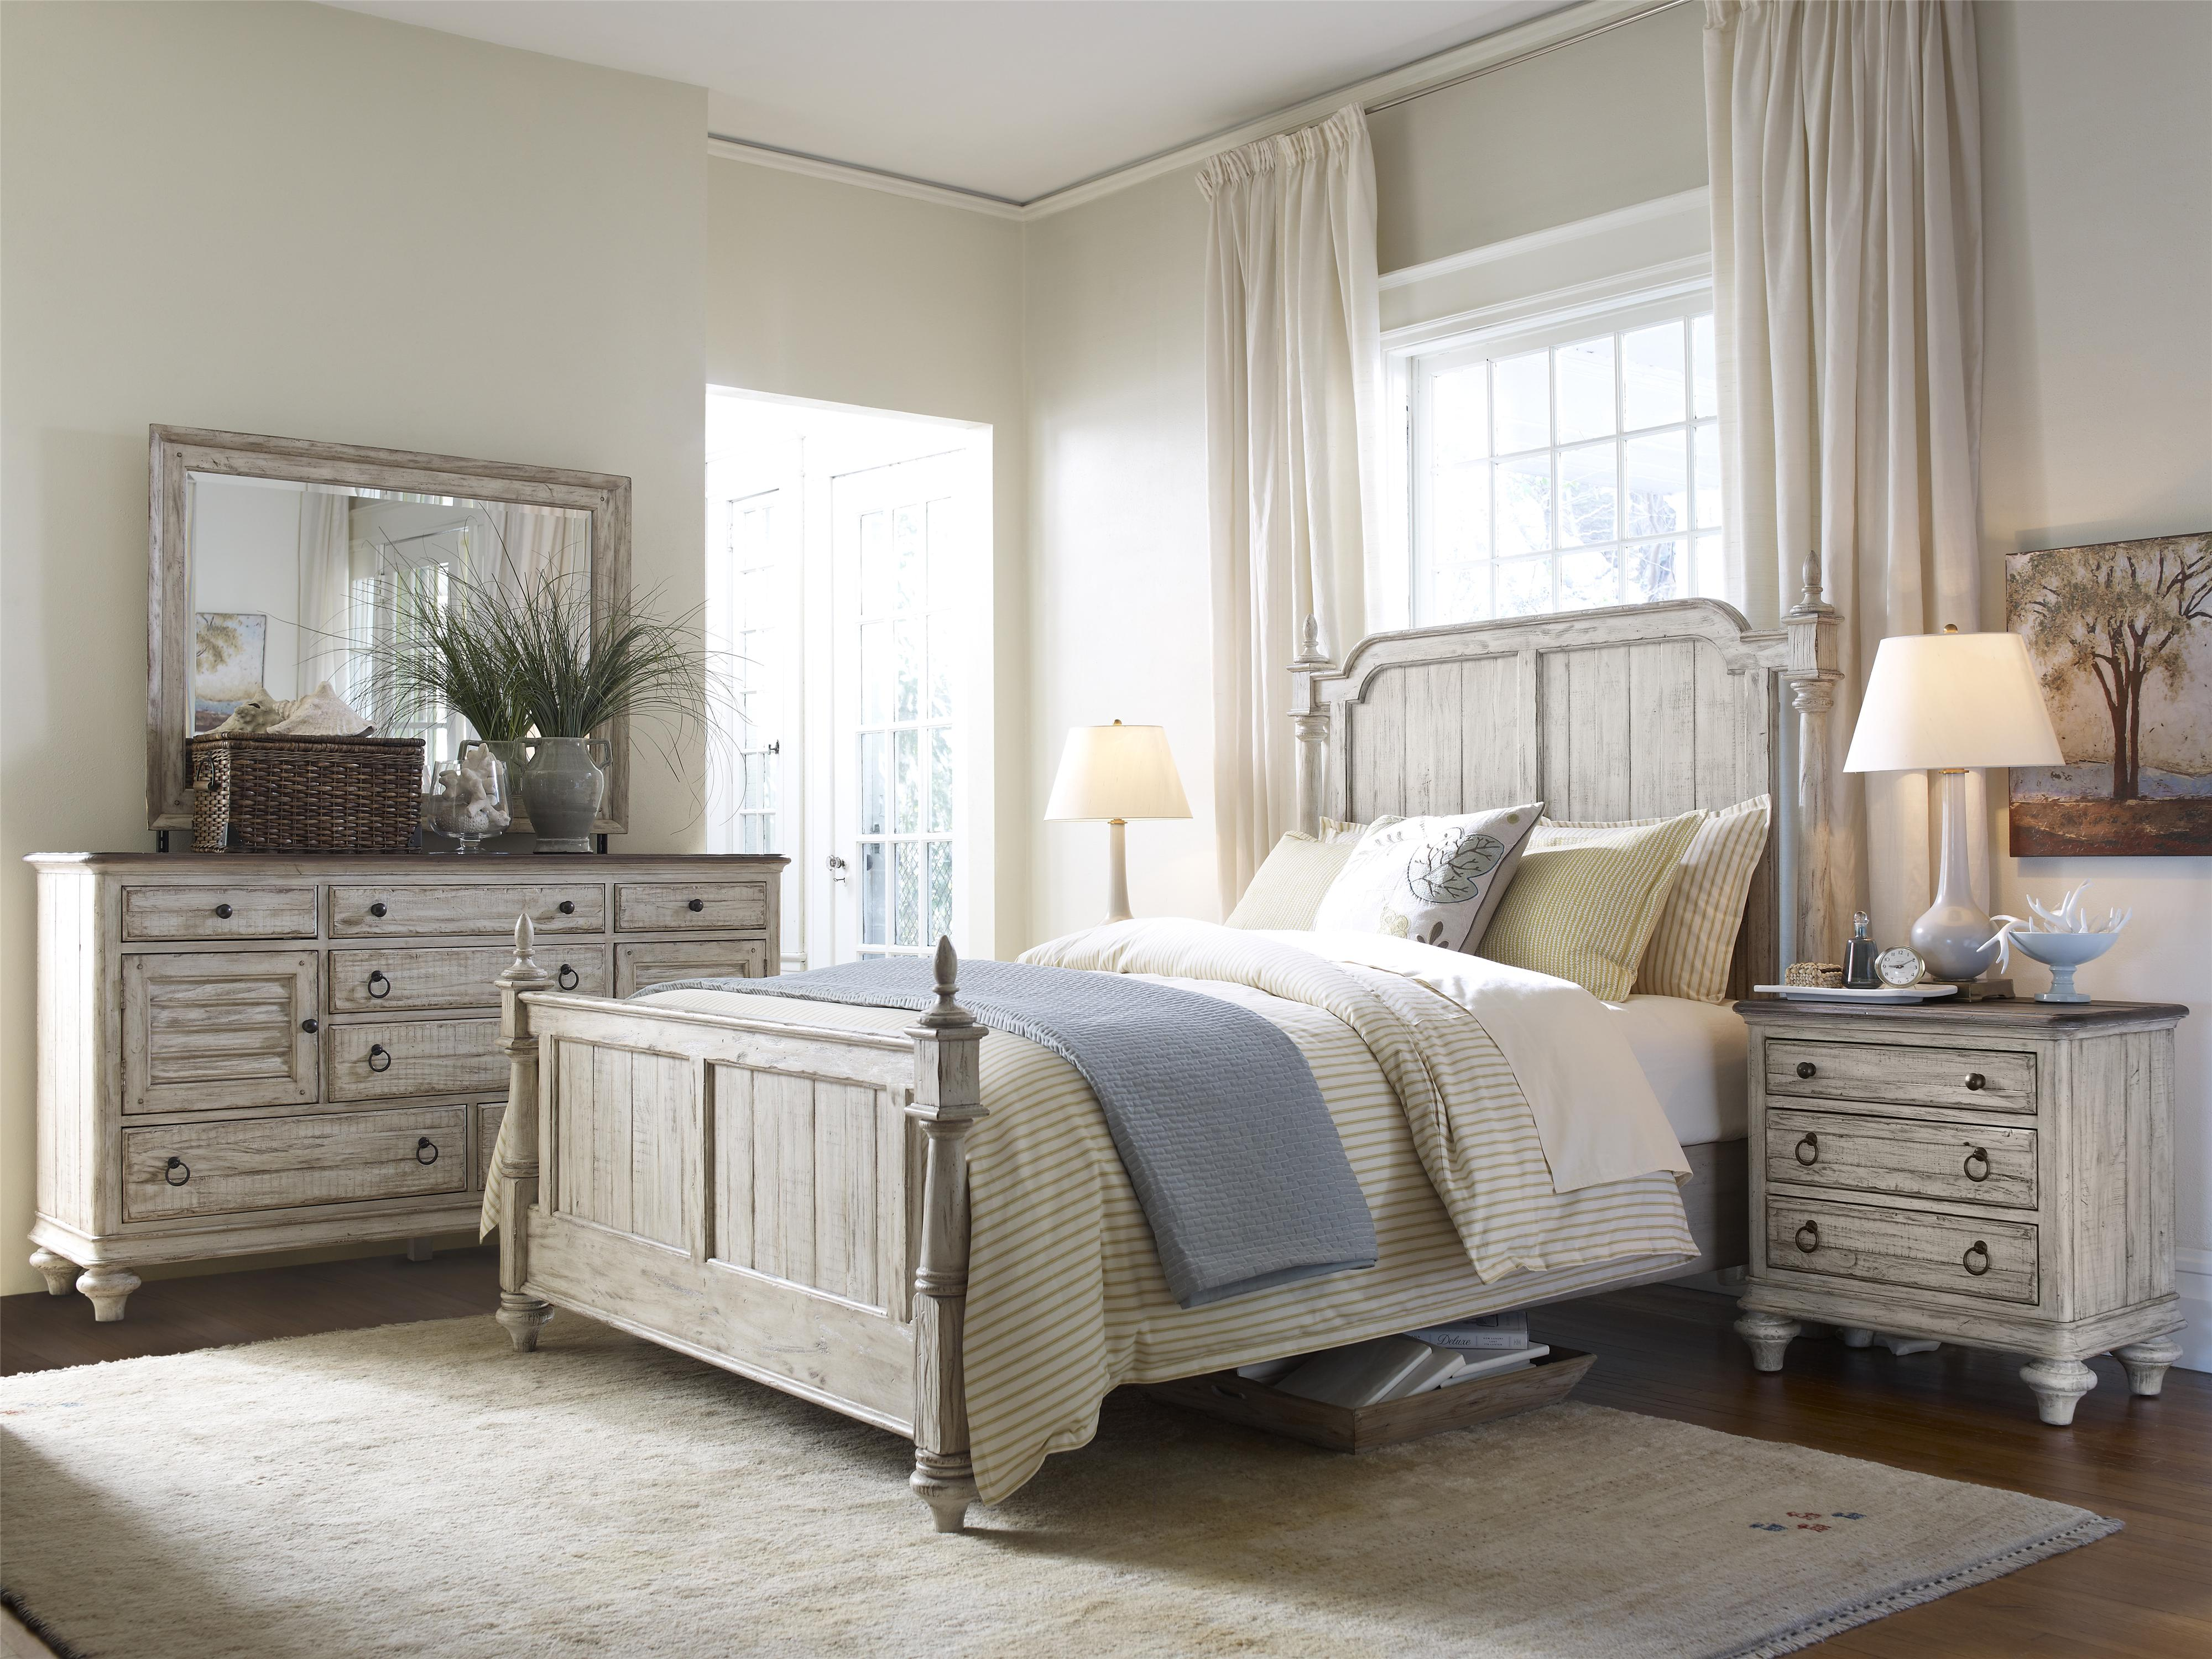 Weatherford King Bedroom Group by Kincaid Furniture at Northeast Factory Direct